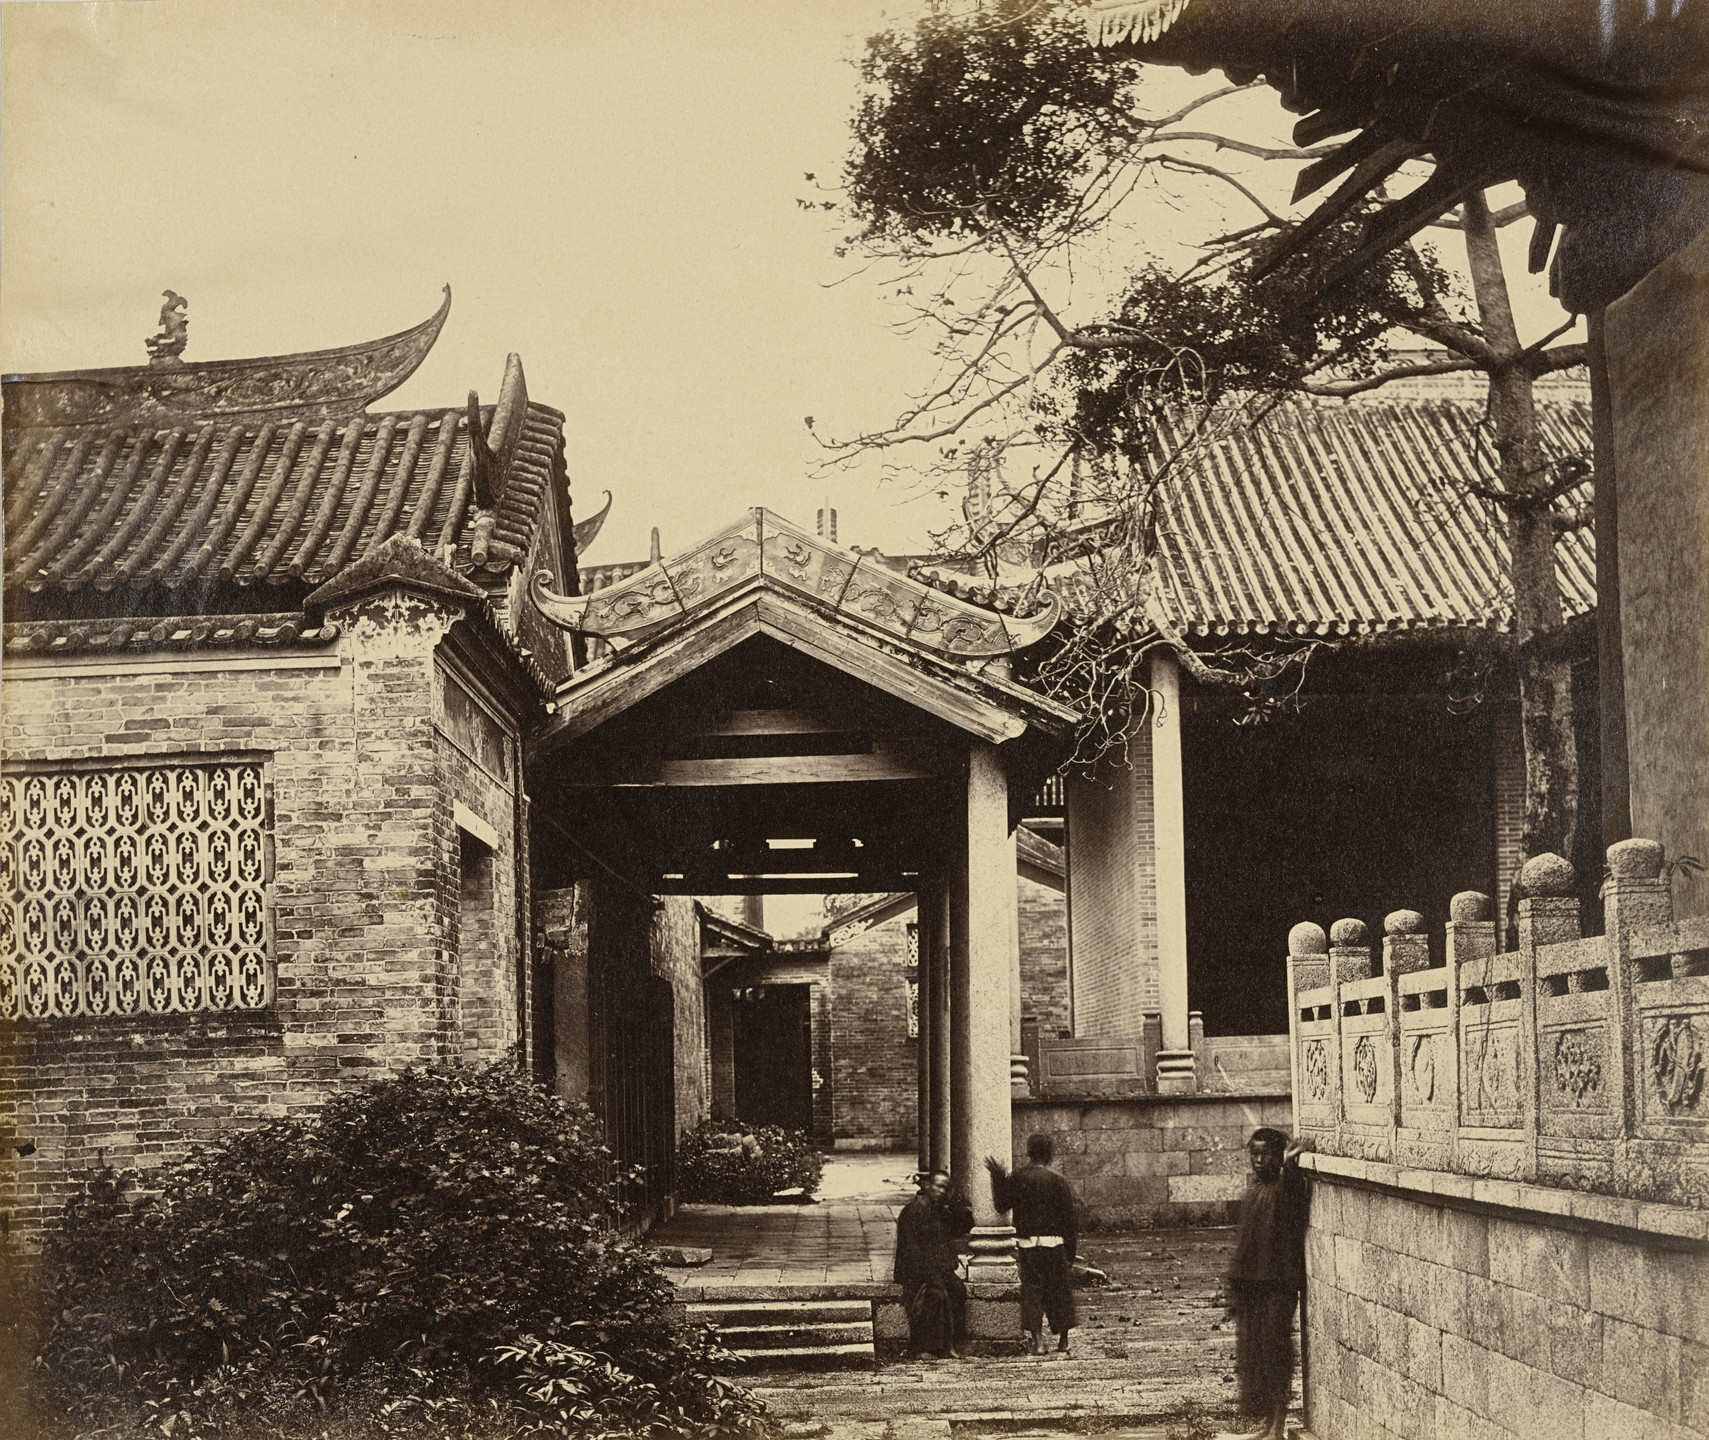 Felice Beato. Name Hui Kung Temple, Canton. April 1, 1860